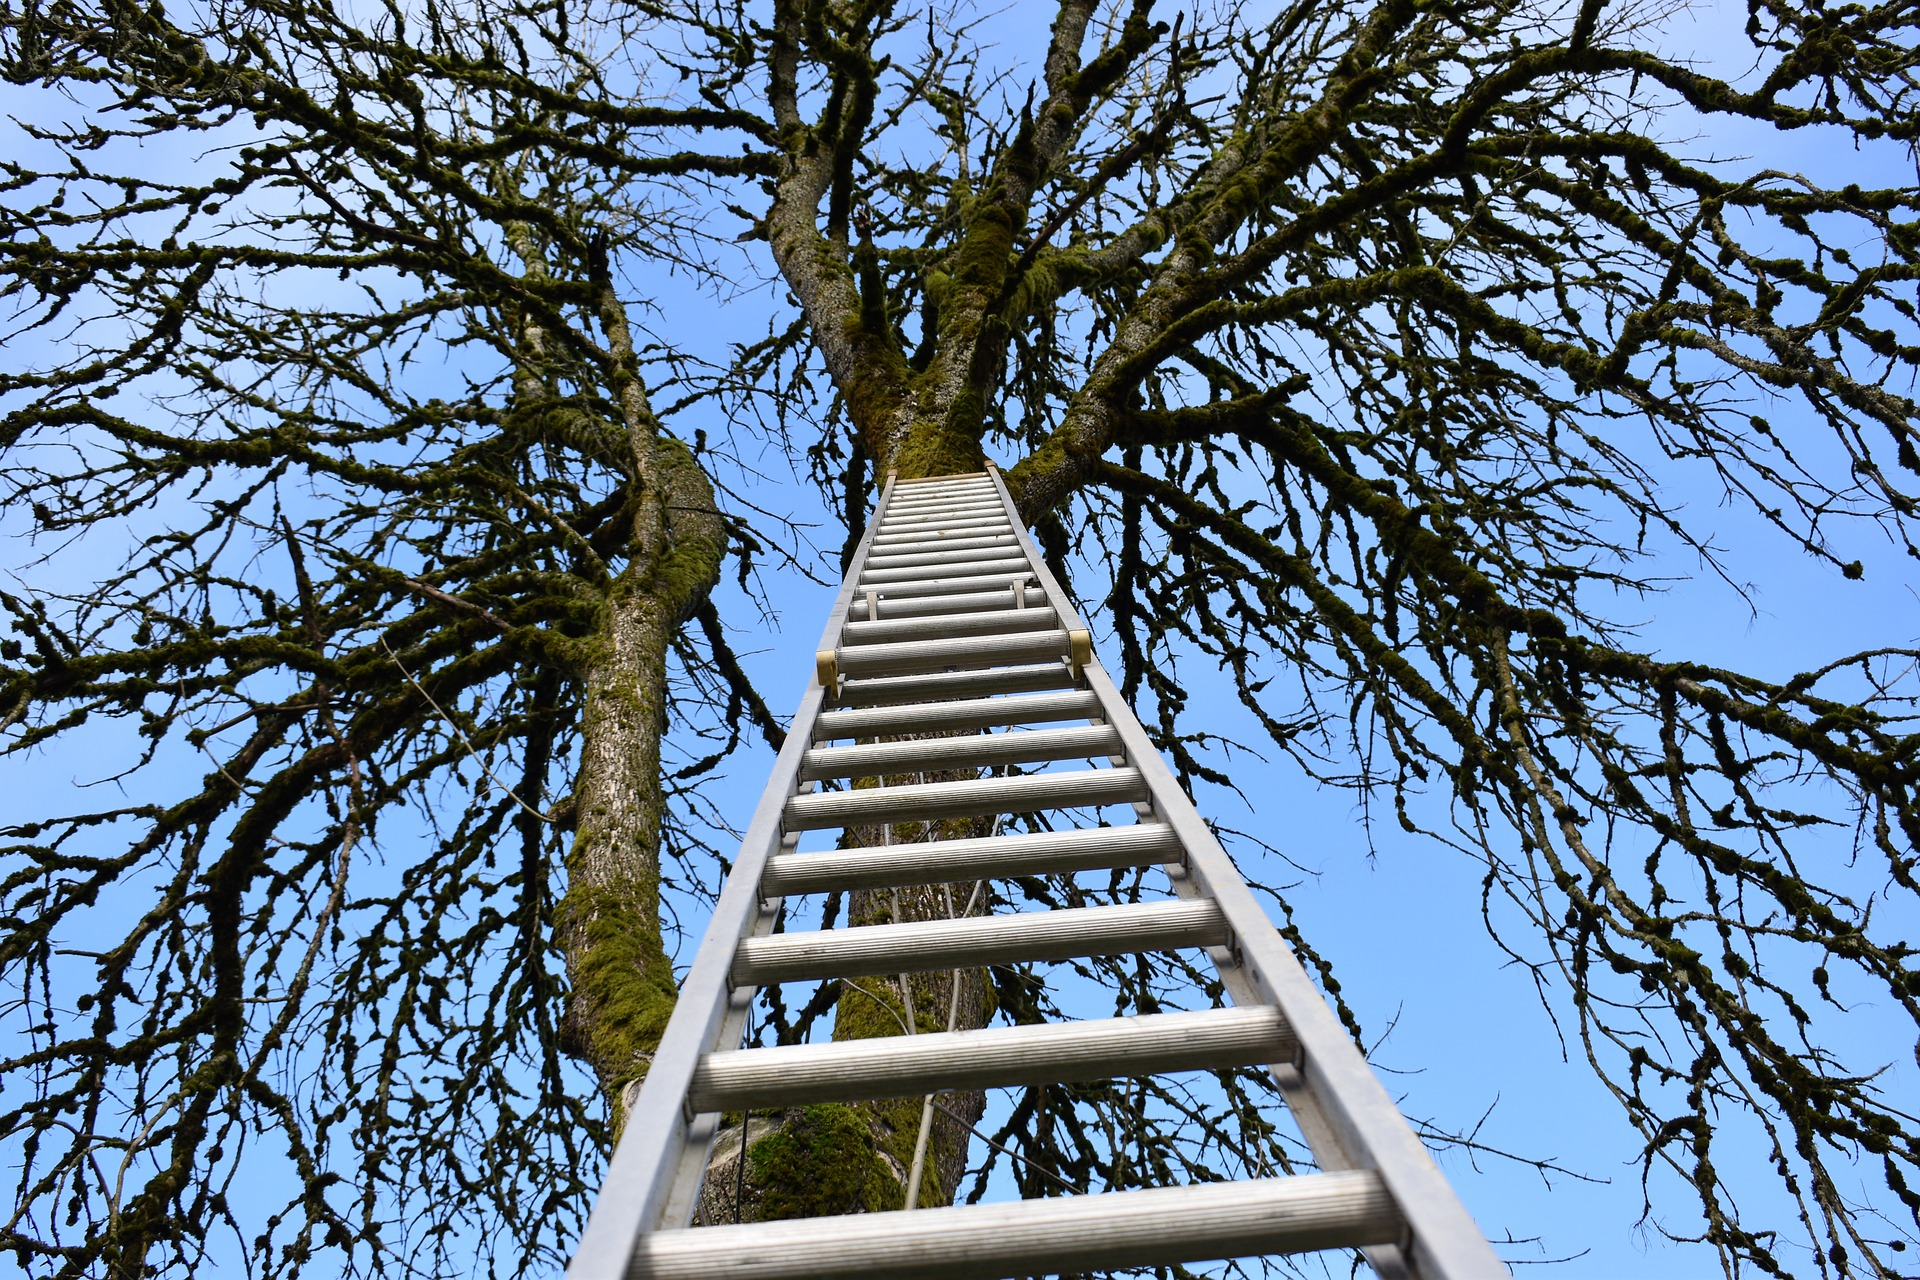 DIY Tree Work? Draw the Line at Ladders and Saws